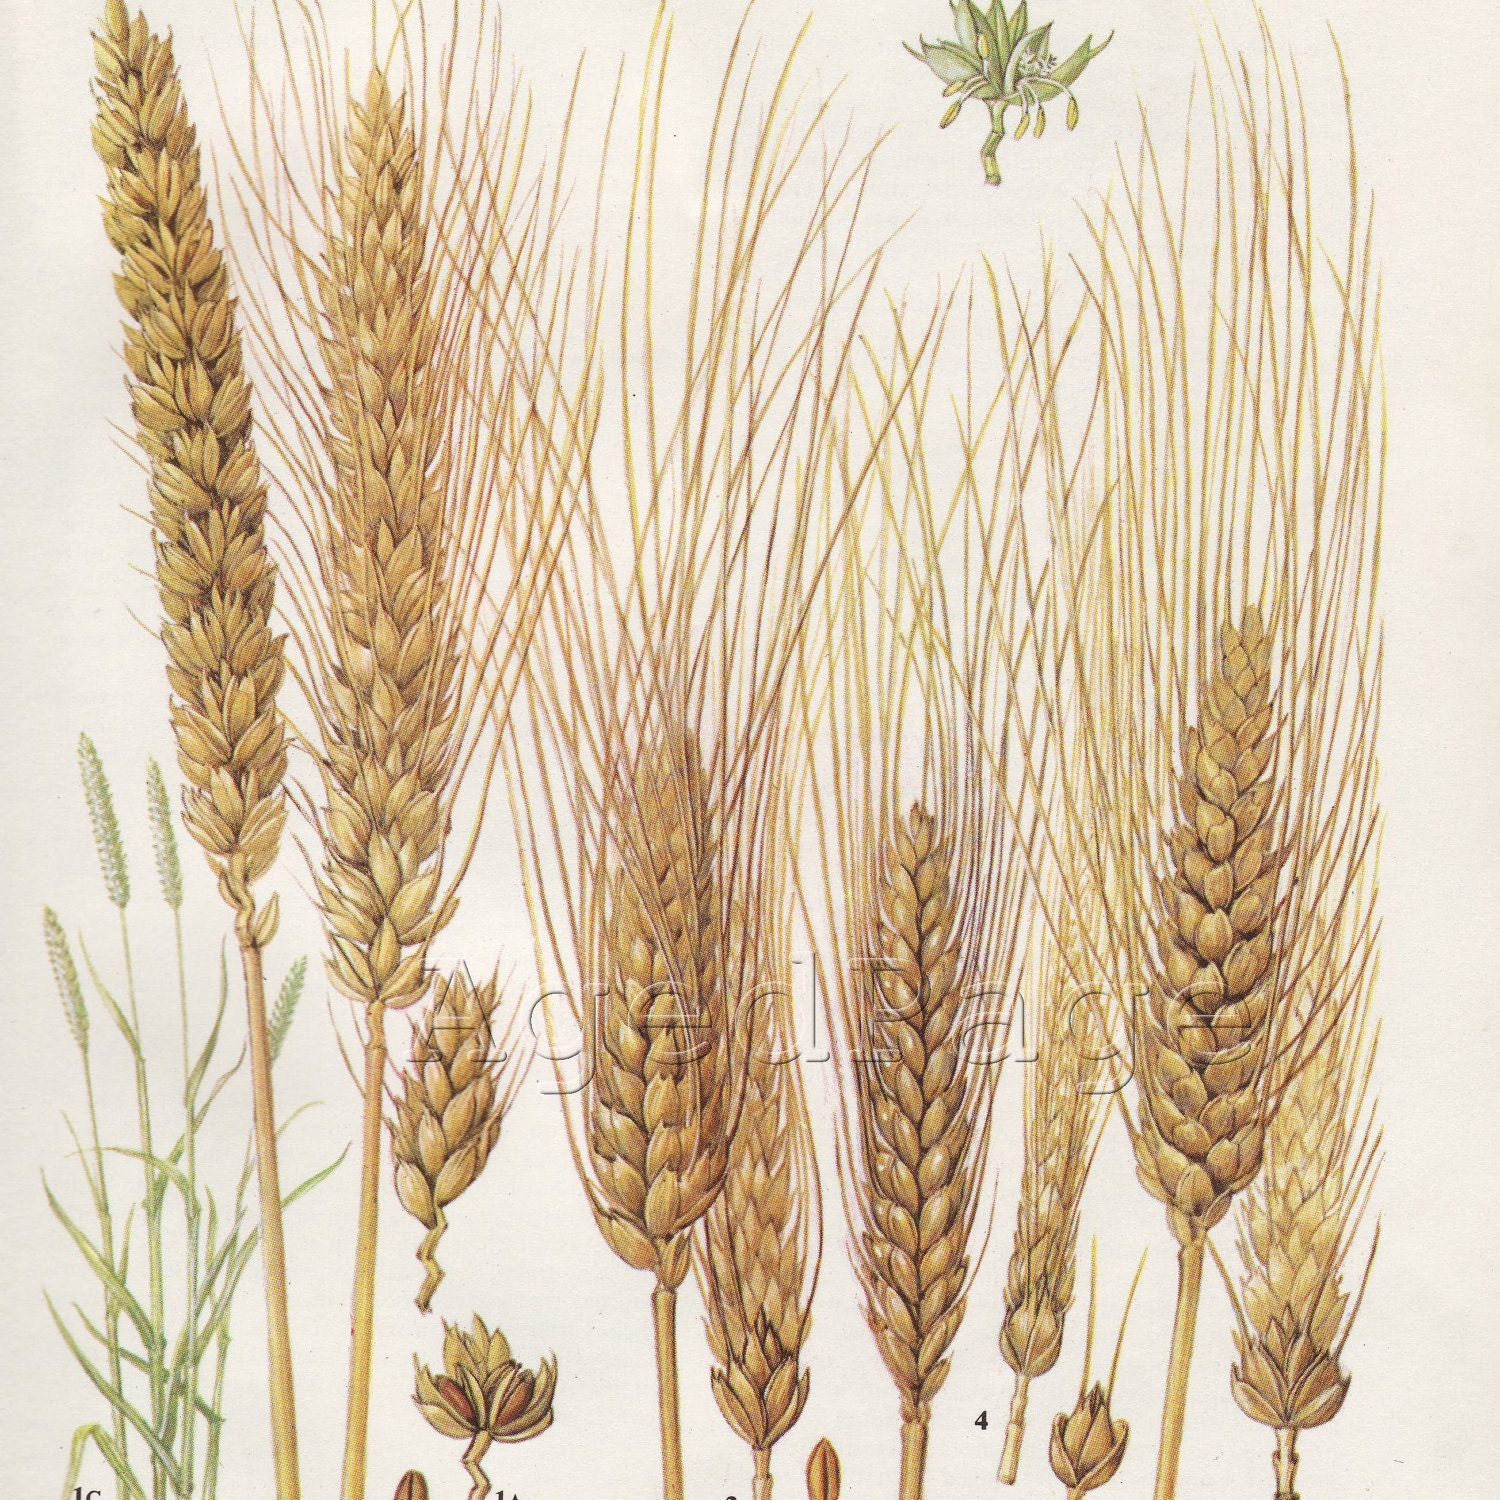 Wheat Botanical Drawing The book art illustrationWheat Botanical Illustration